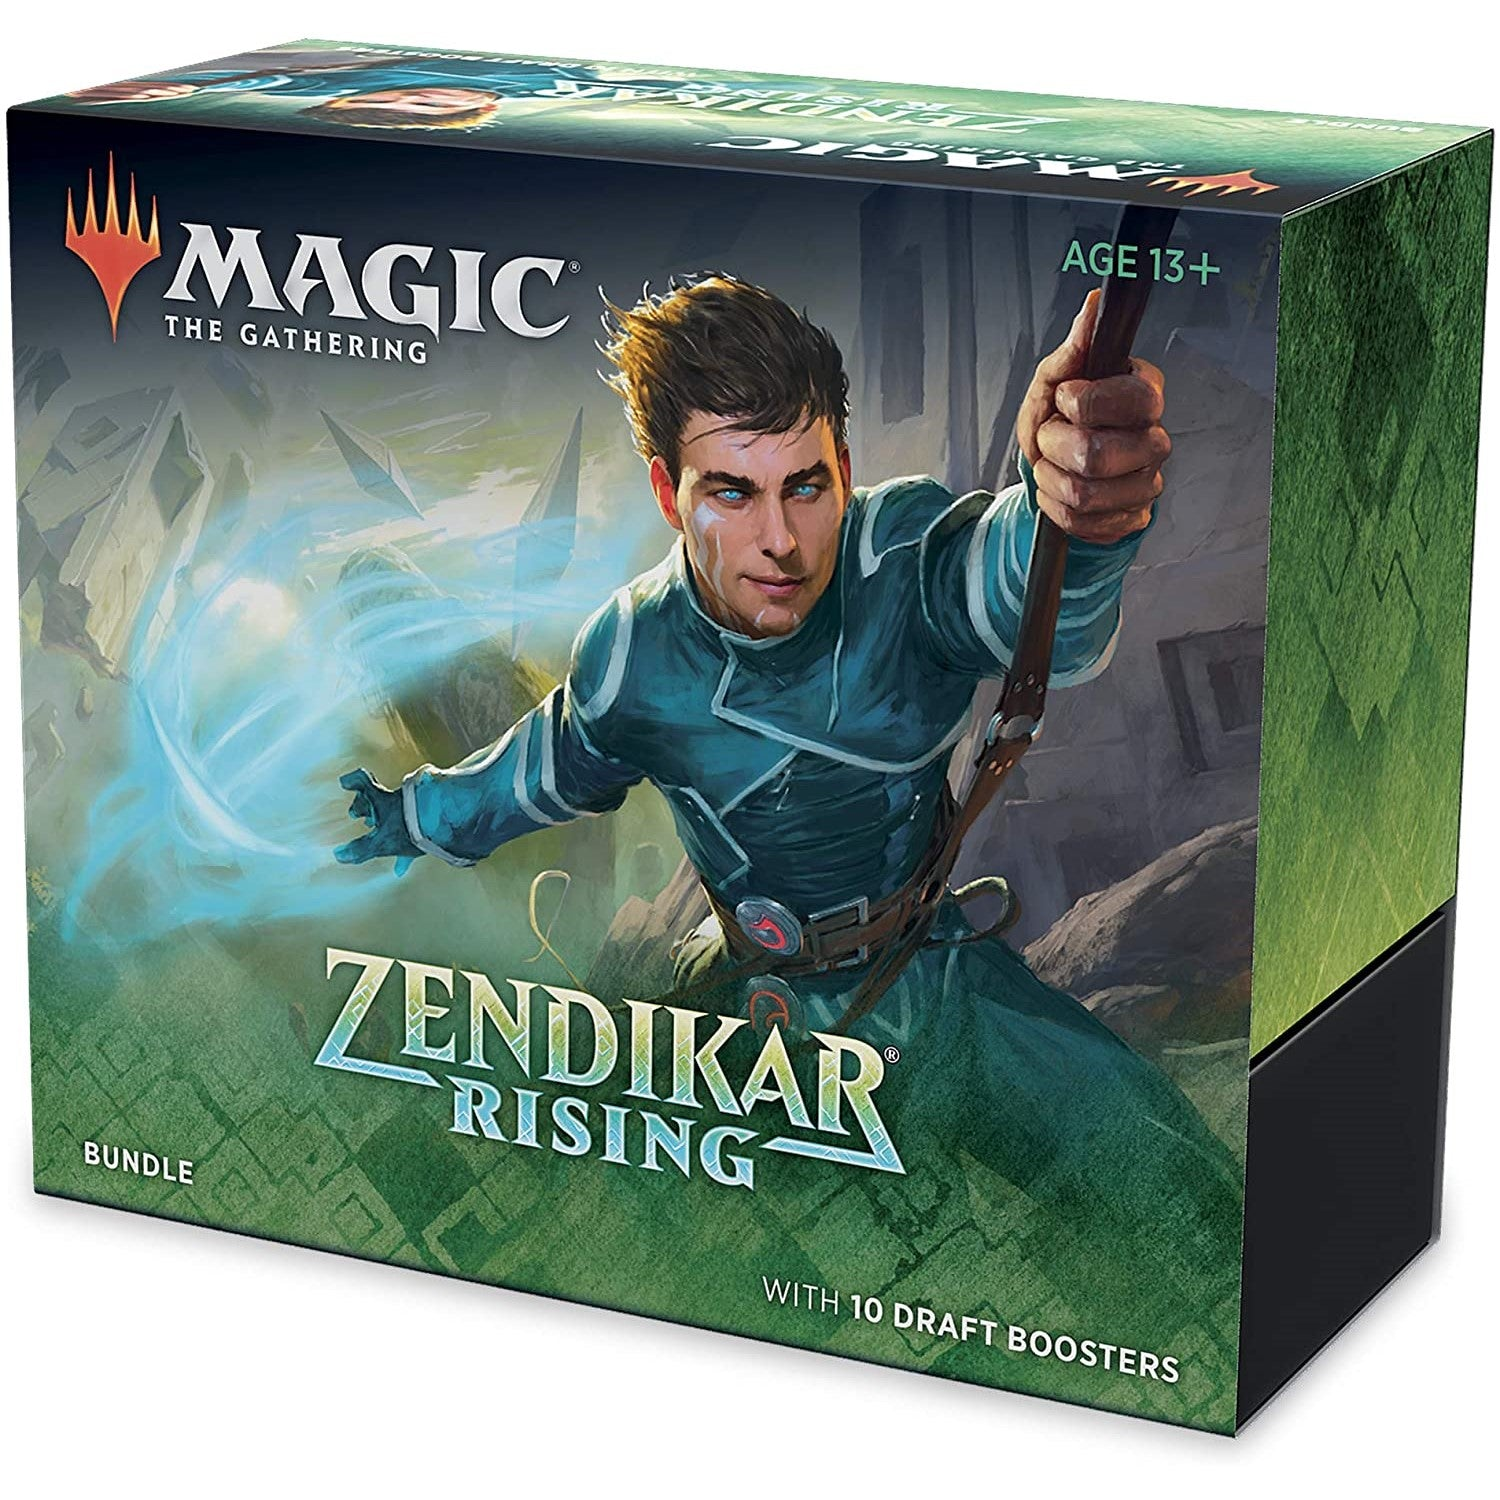 Zendikar Rising Booster Product